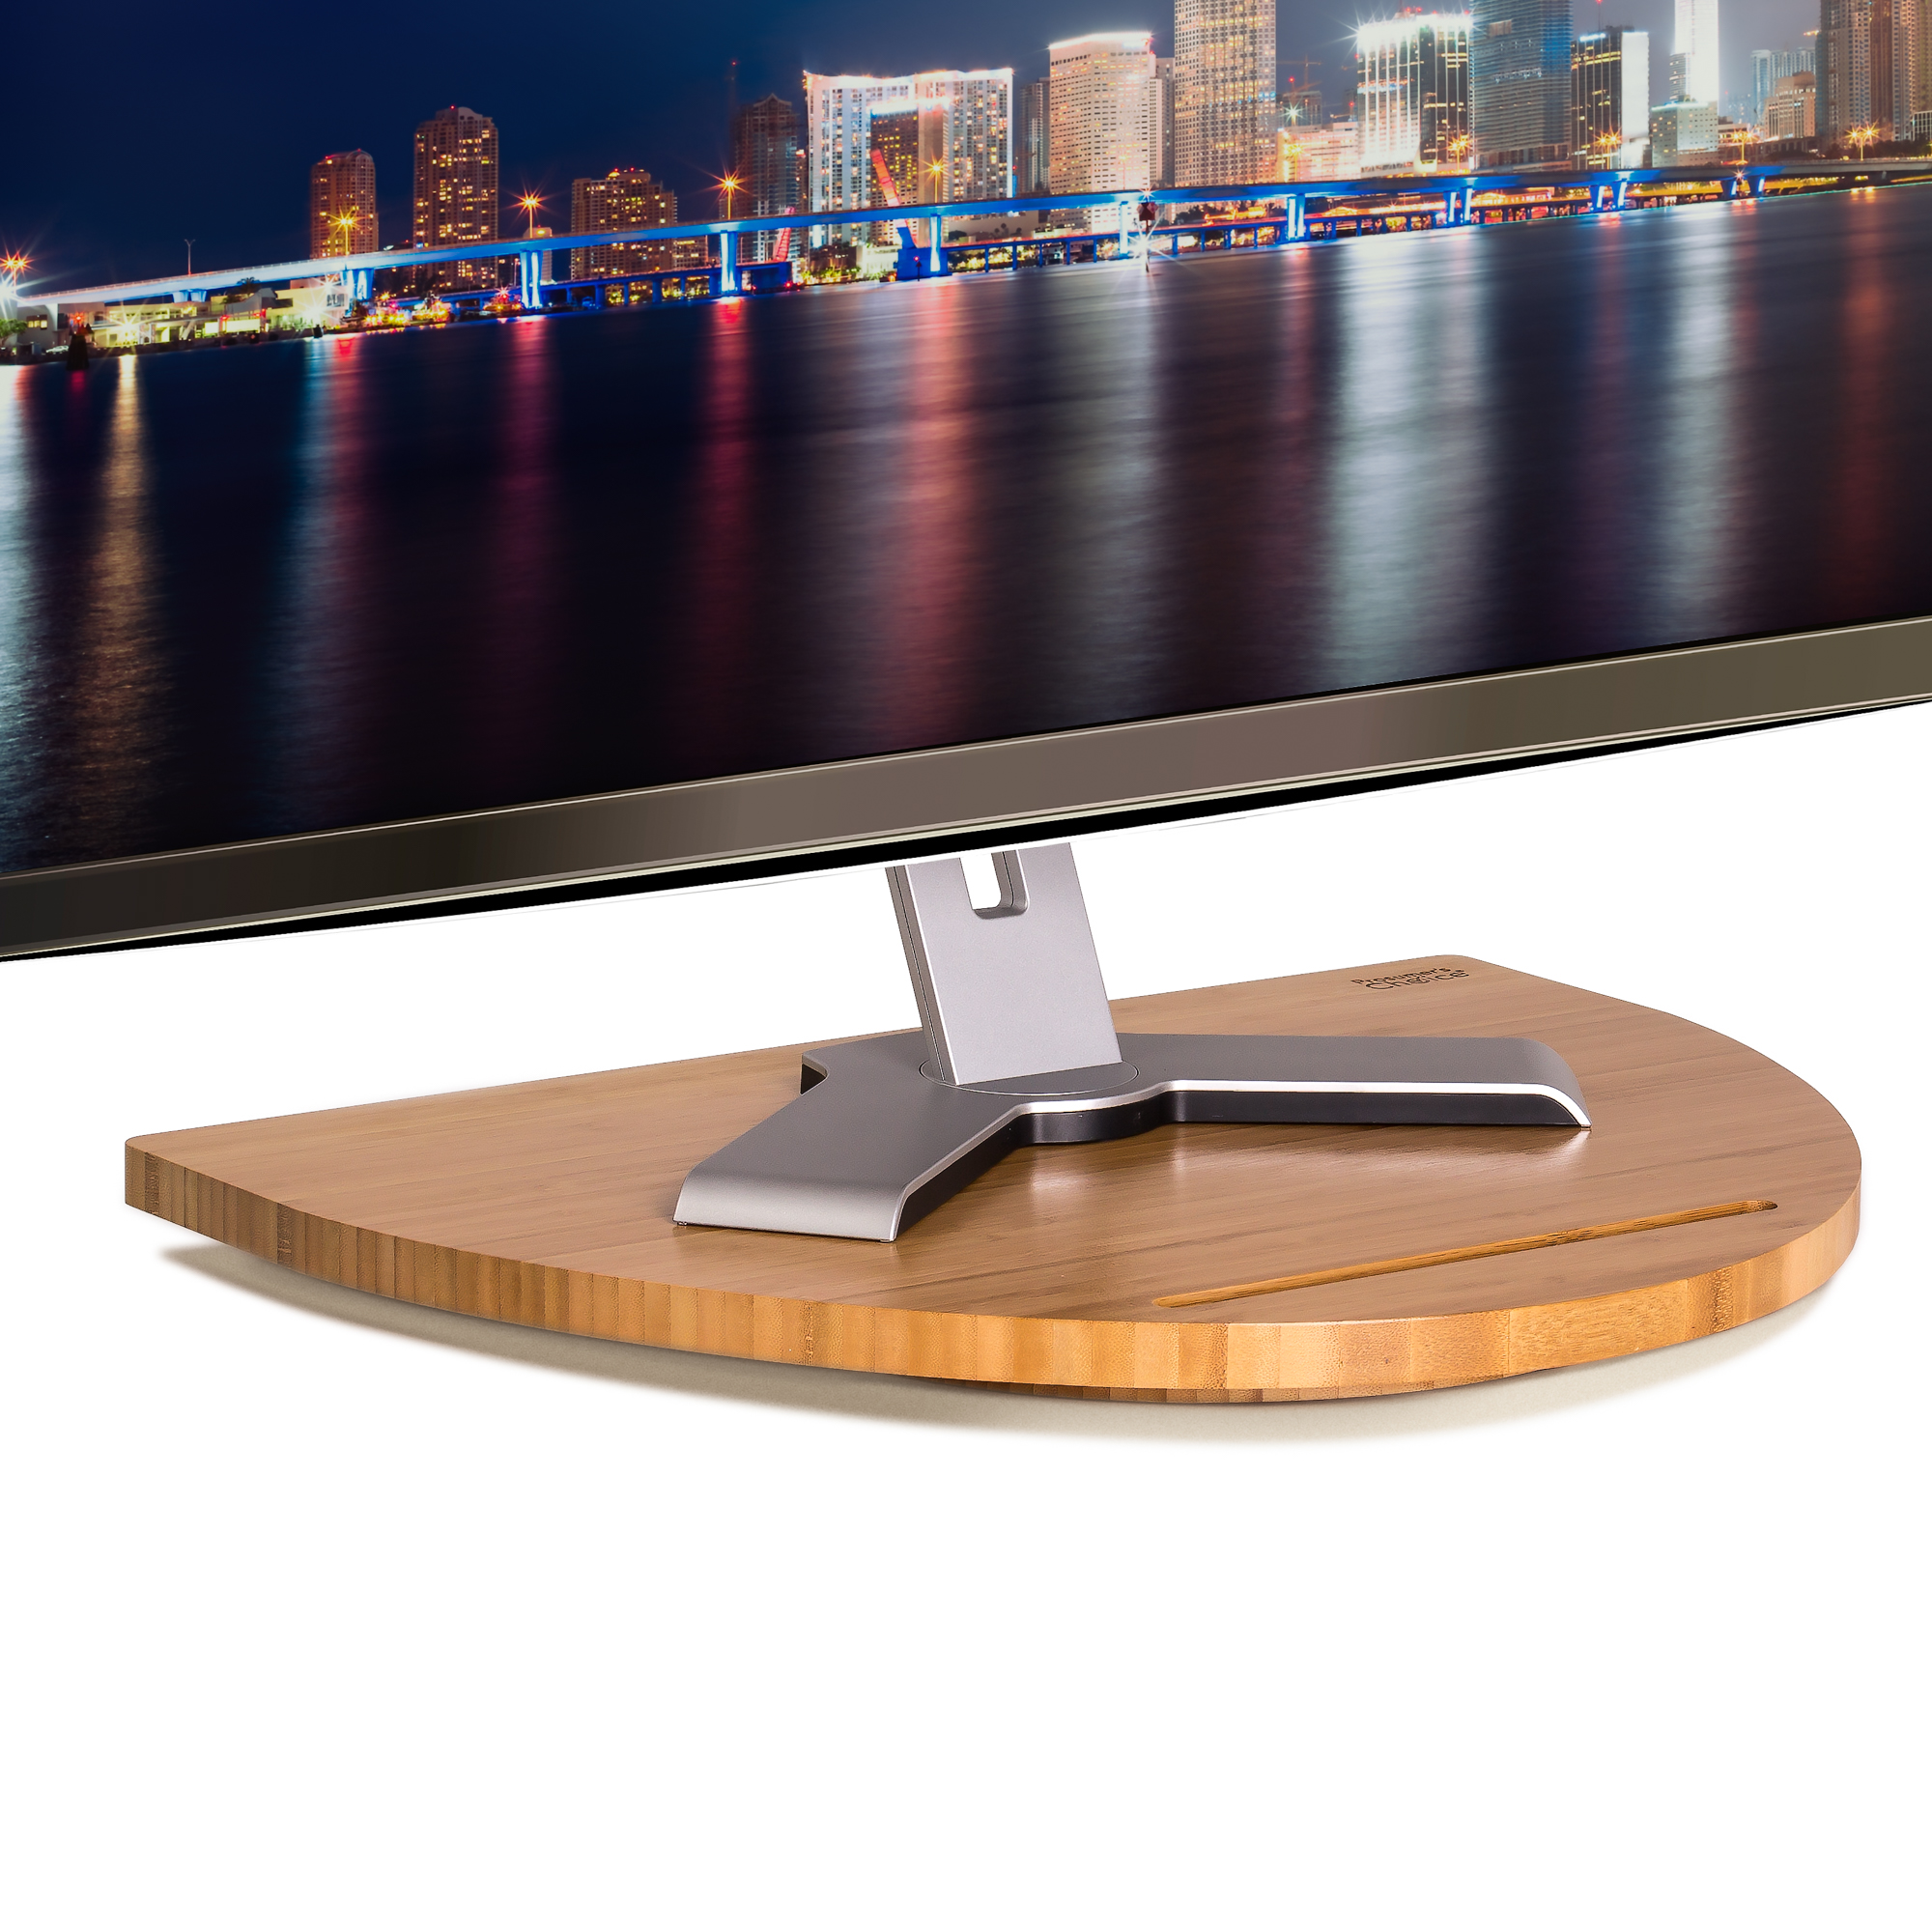 Prosumer's Choice Bamboo TV/Tablet Swivel Stand / Lazy Susan